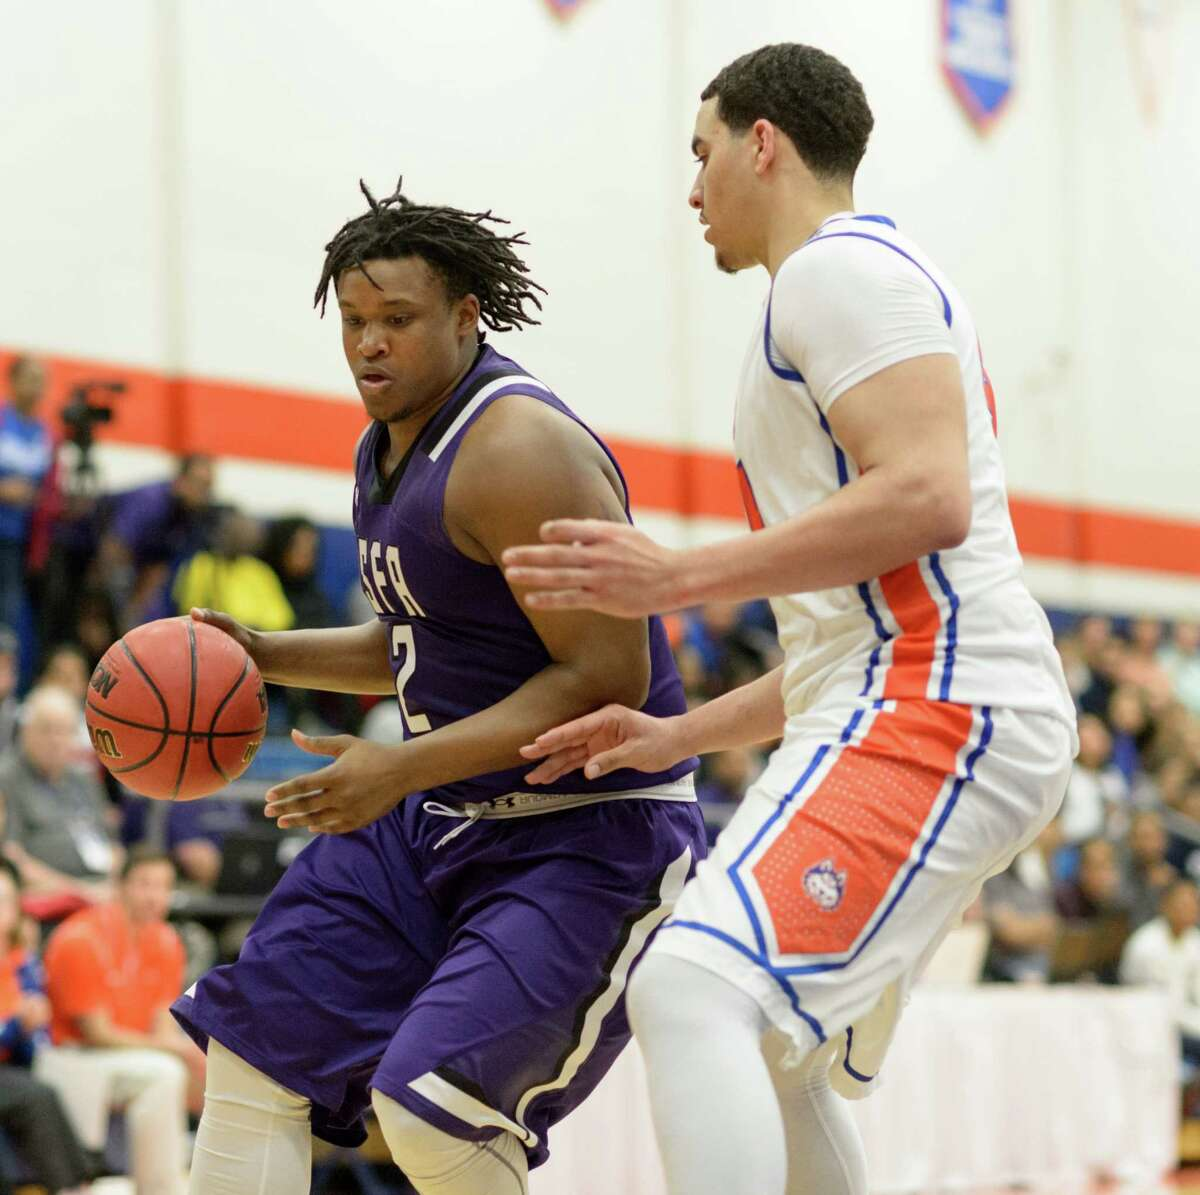 CJ Williams (2) of the Stephen F. Austin Lumberjacks drives to the basket in the second half against Houston Baptist University in a college basketball game on Saturday, February 6, 2016 at Sharp Gym.